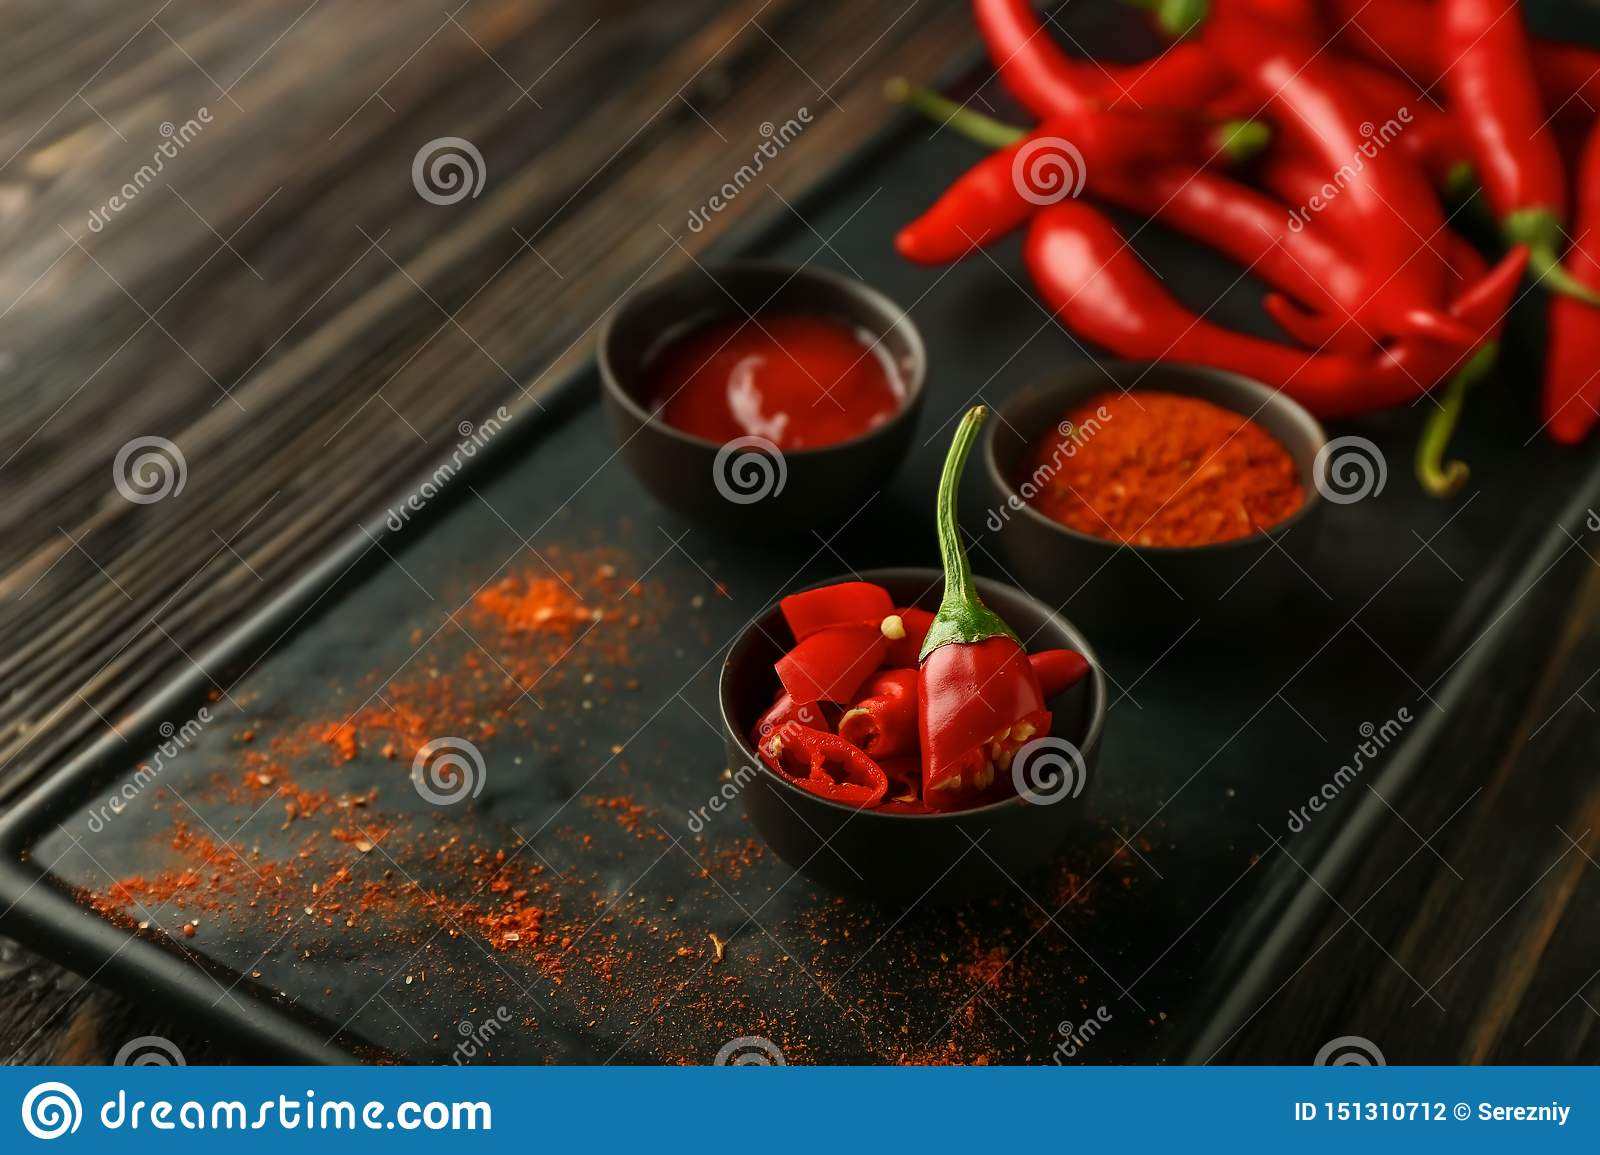 Bowls with red hot chili pepper, powder and sauce on plate, closeup